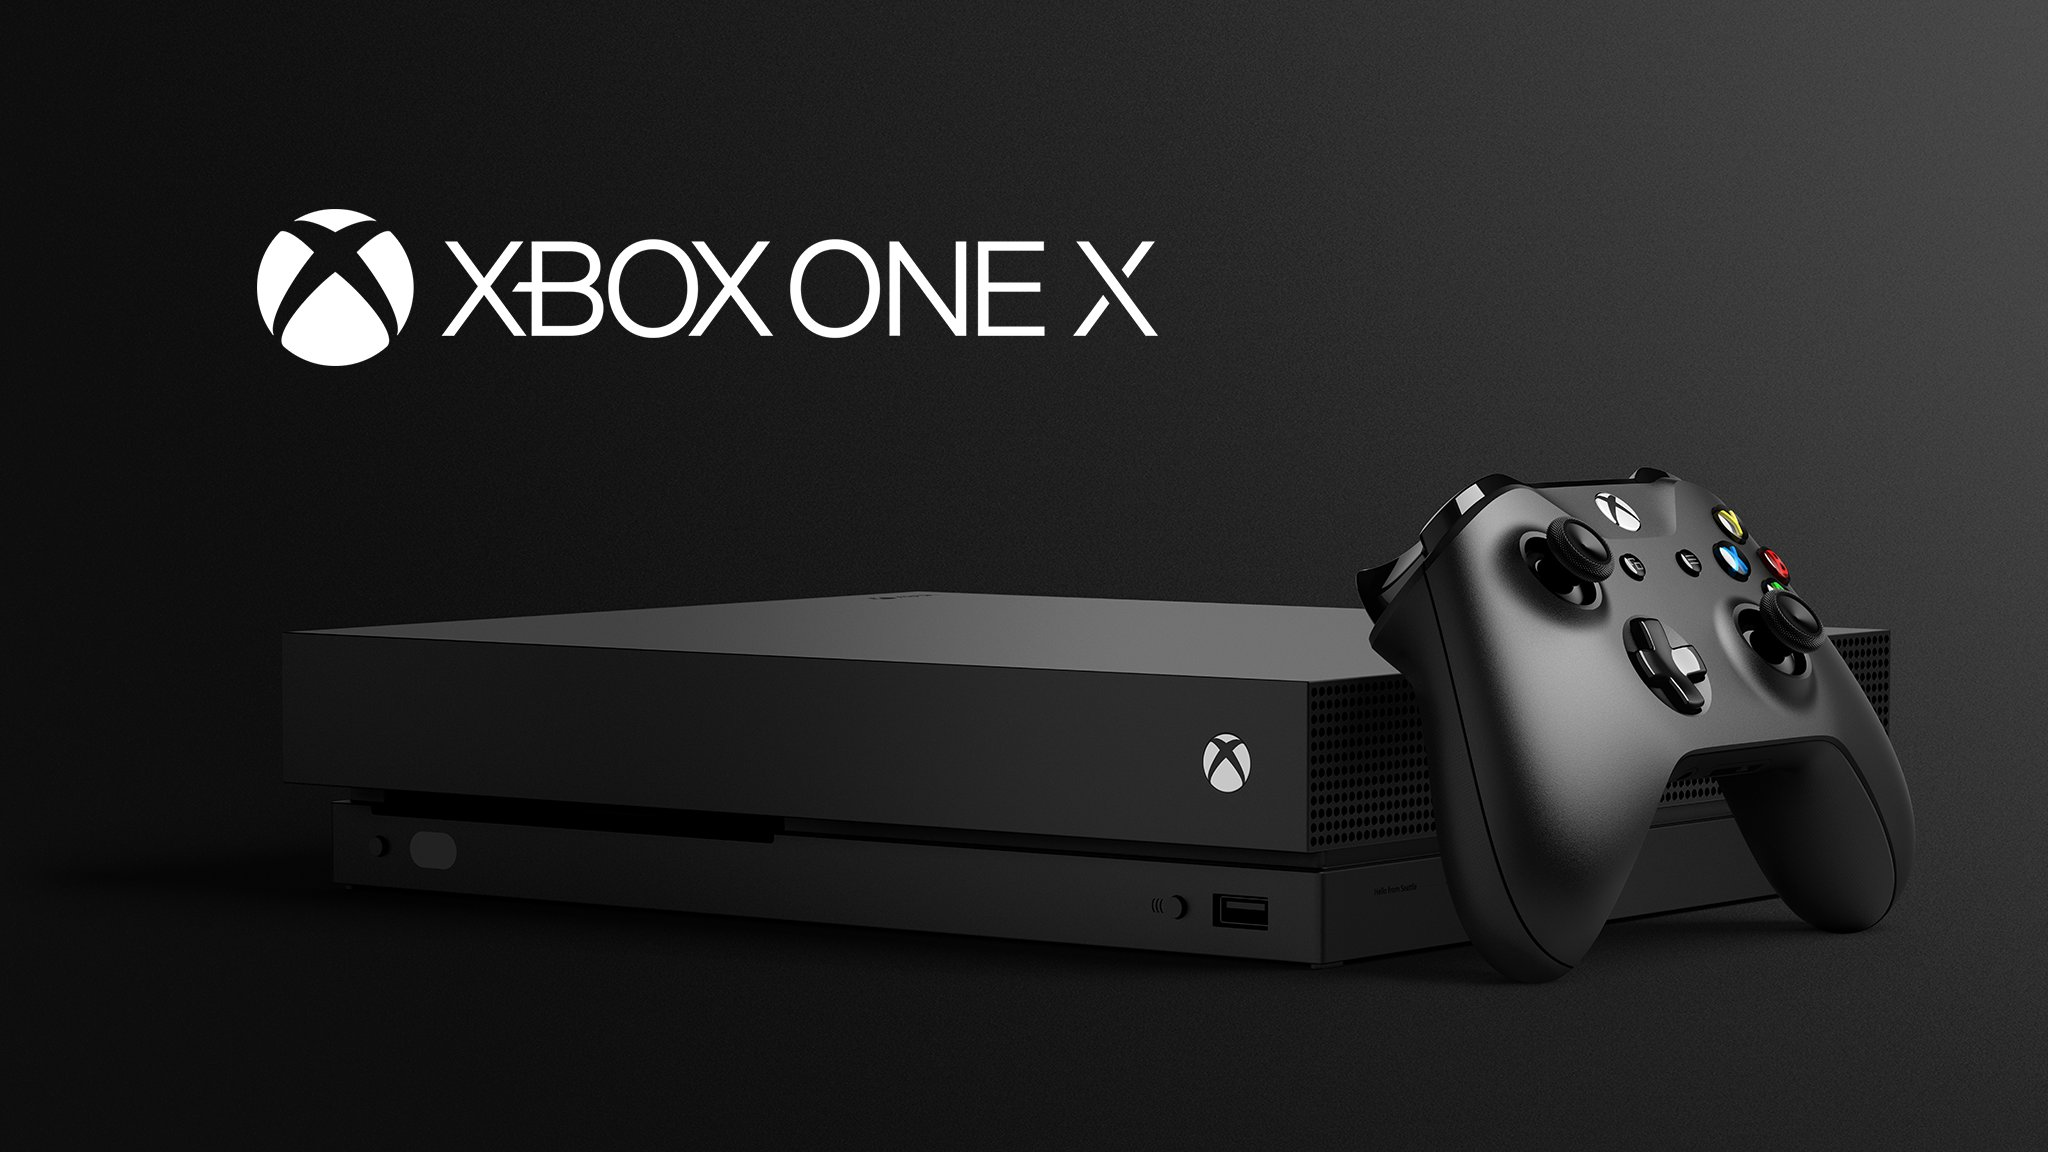 xboxonex - XBox One X Specifications And Price In Nigeria And Kenya